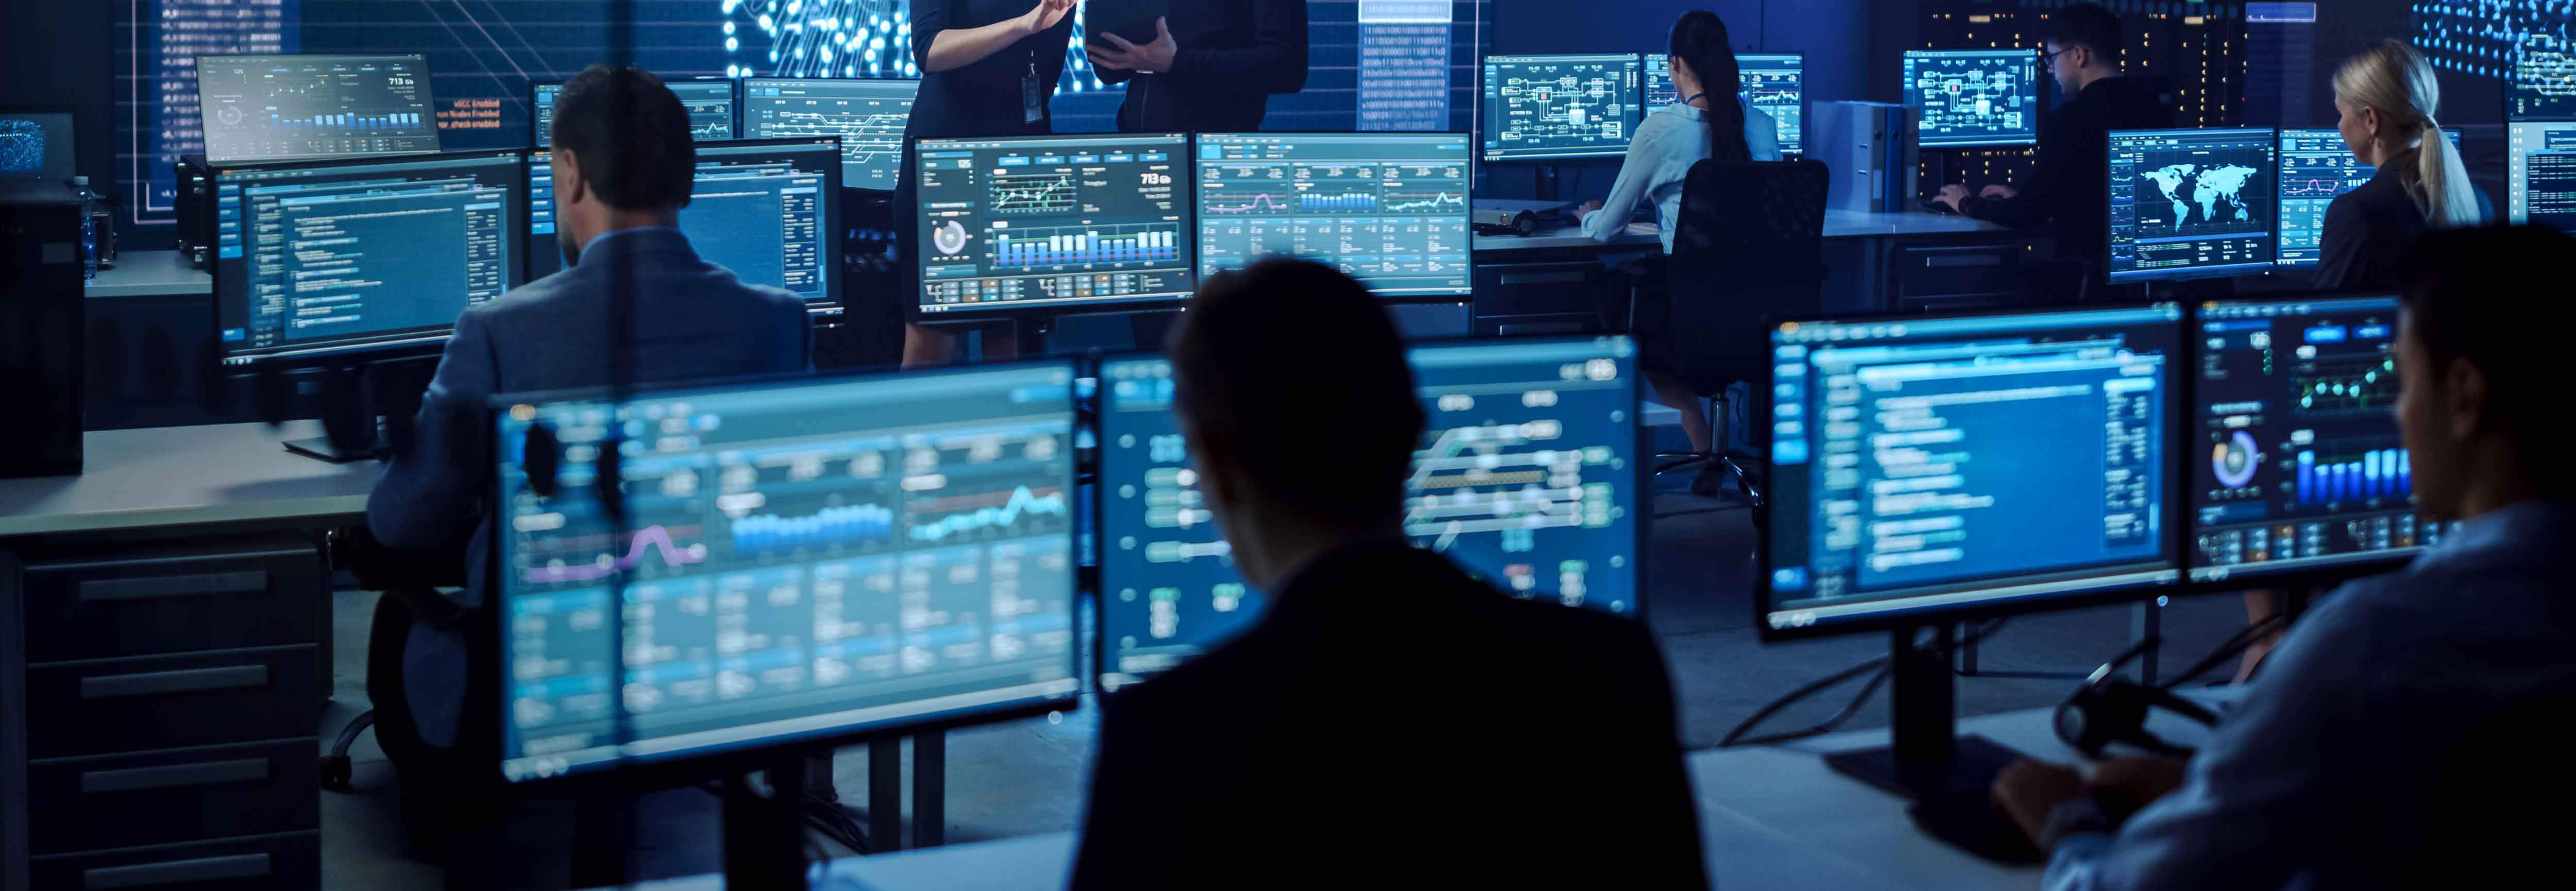 Security analysts in a data center. An abundance of screens and complexity.